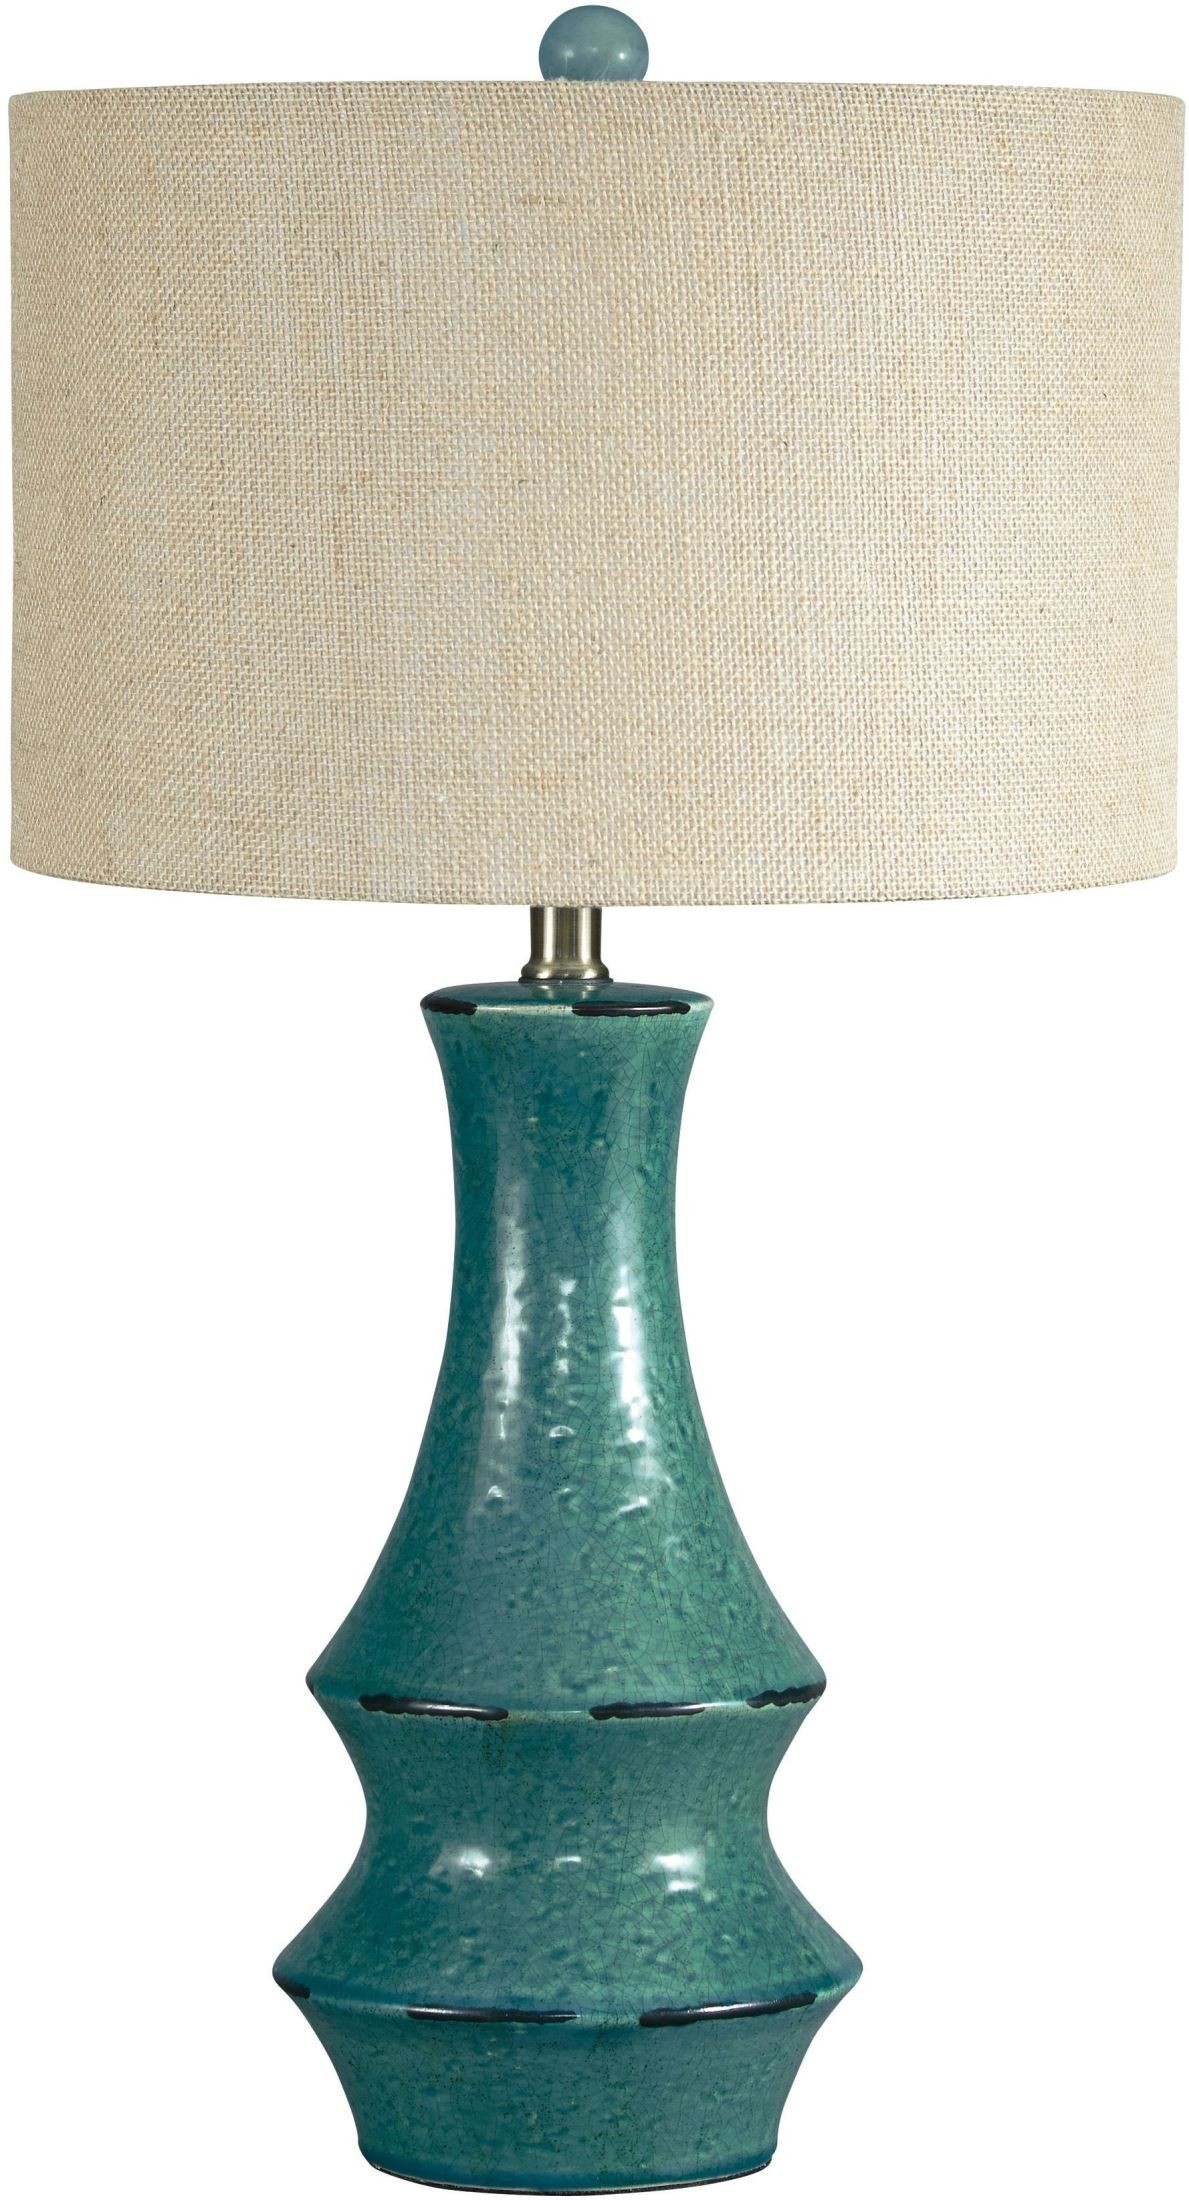 Jenci Antique Teal Ceramic Table Lamp, L100584, Ashley